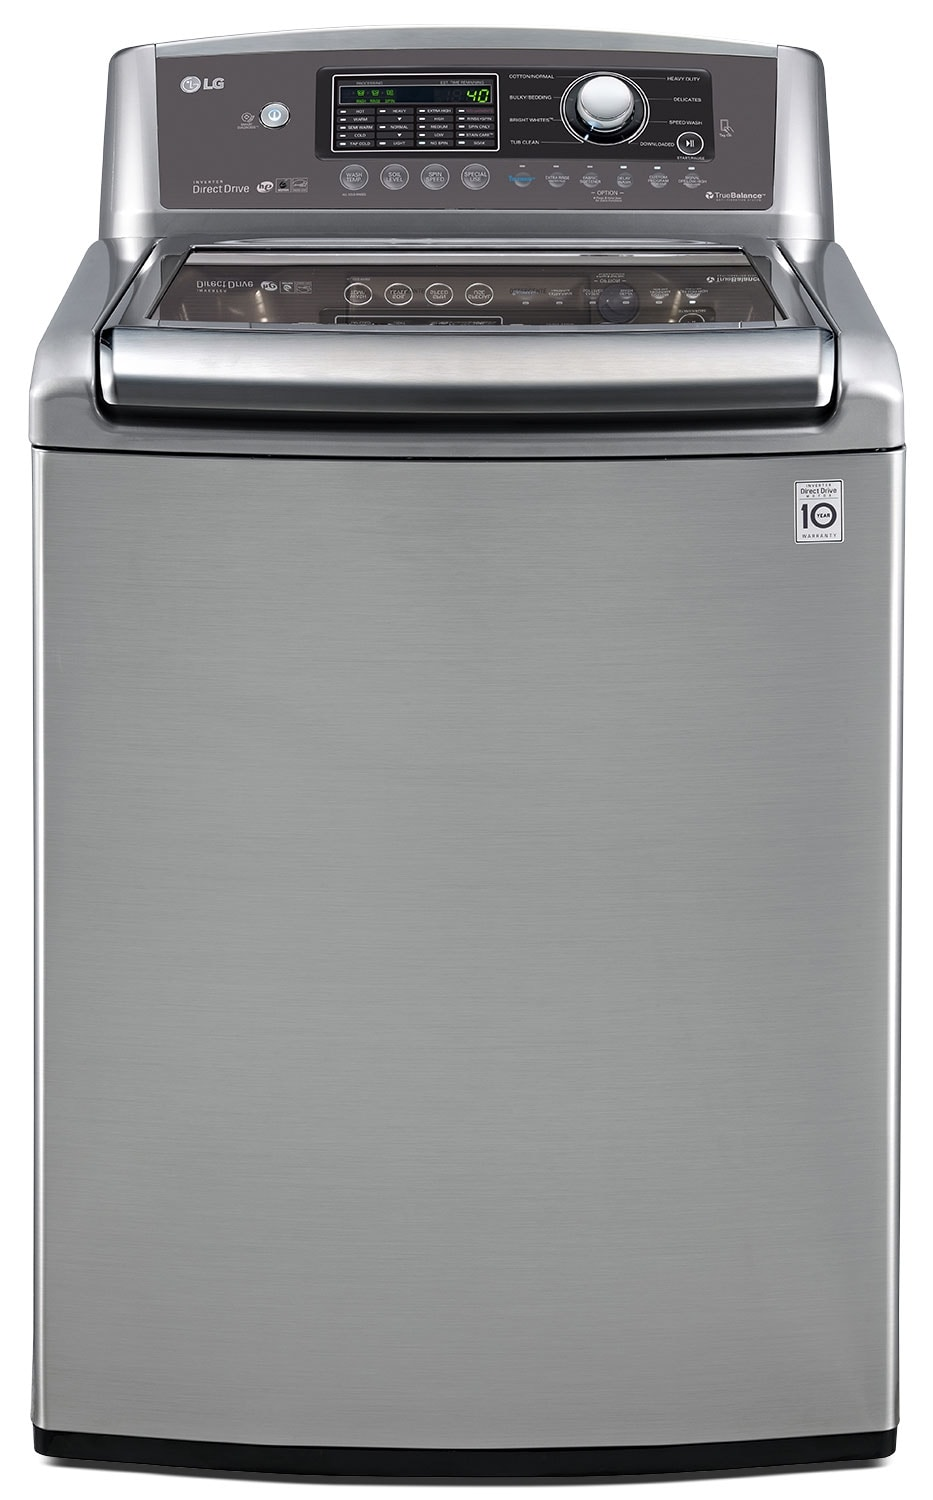 Washers and Dryers - LG 5.6 Cu Ft. High-Efficiency Top-Load Washer with NFC Tag On™ - Graphite Steel